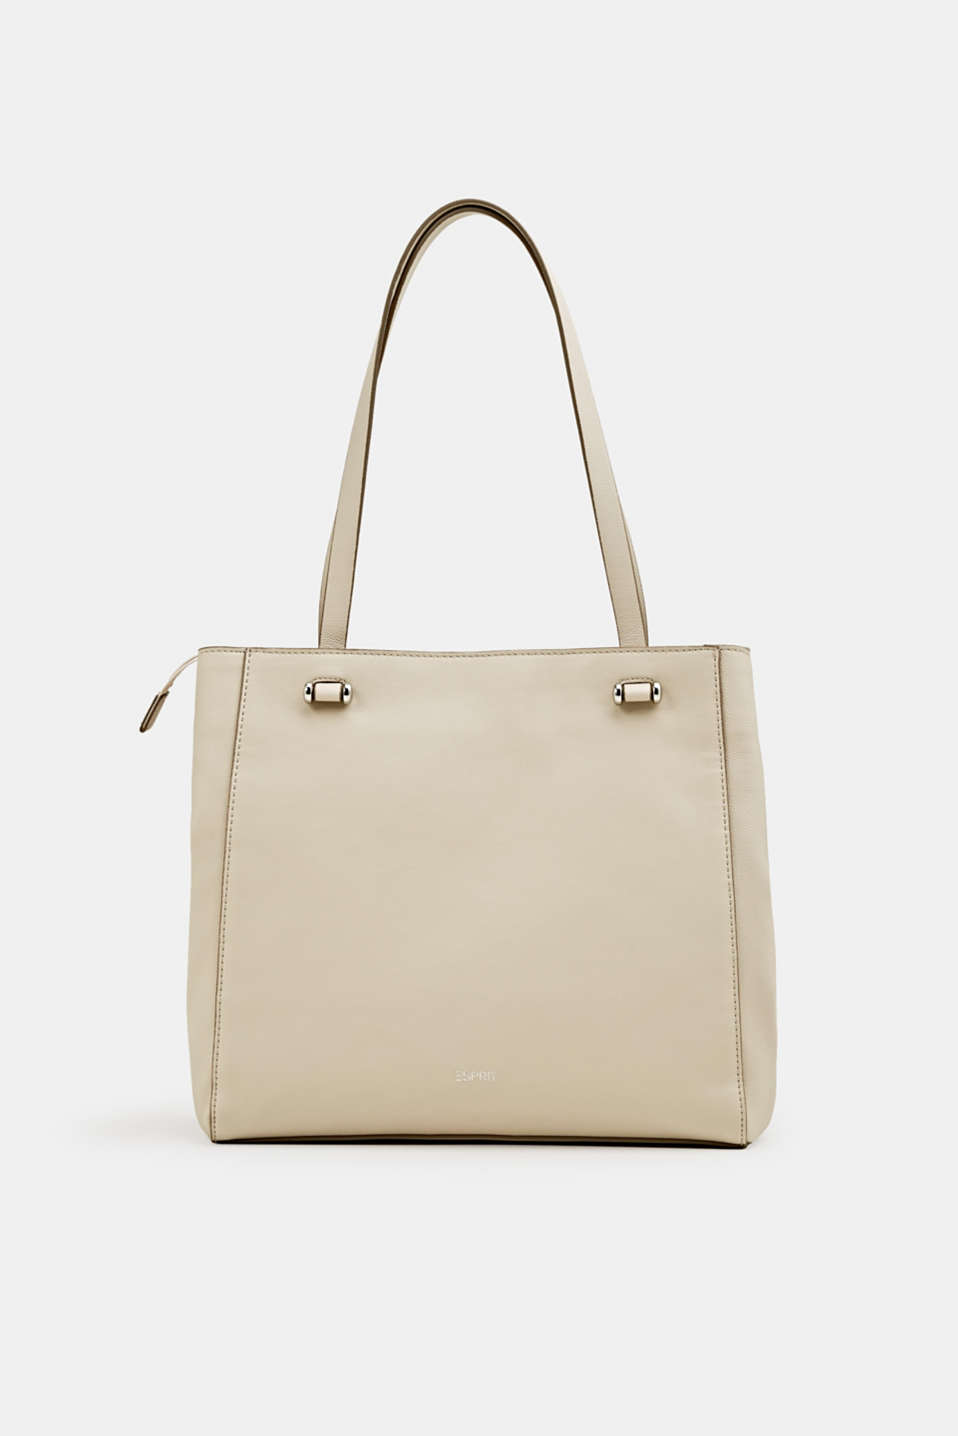 Esprit - Shopper with a new handle design